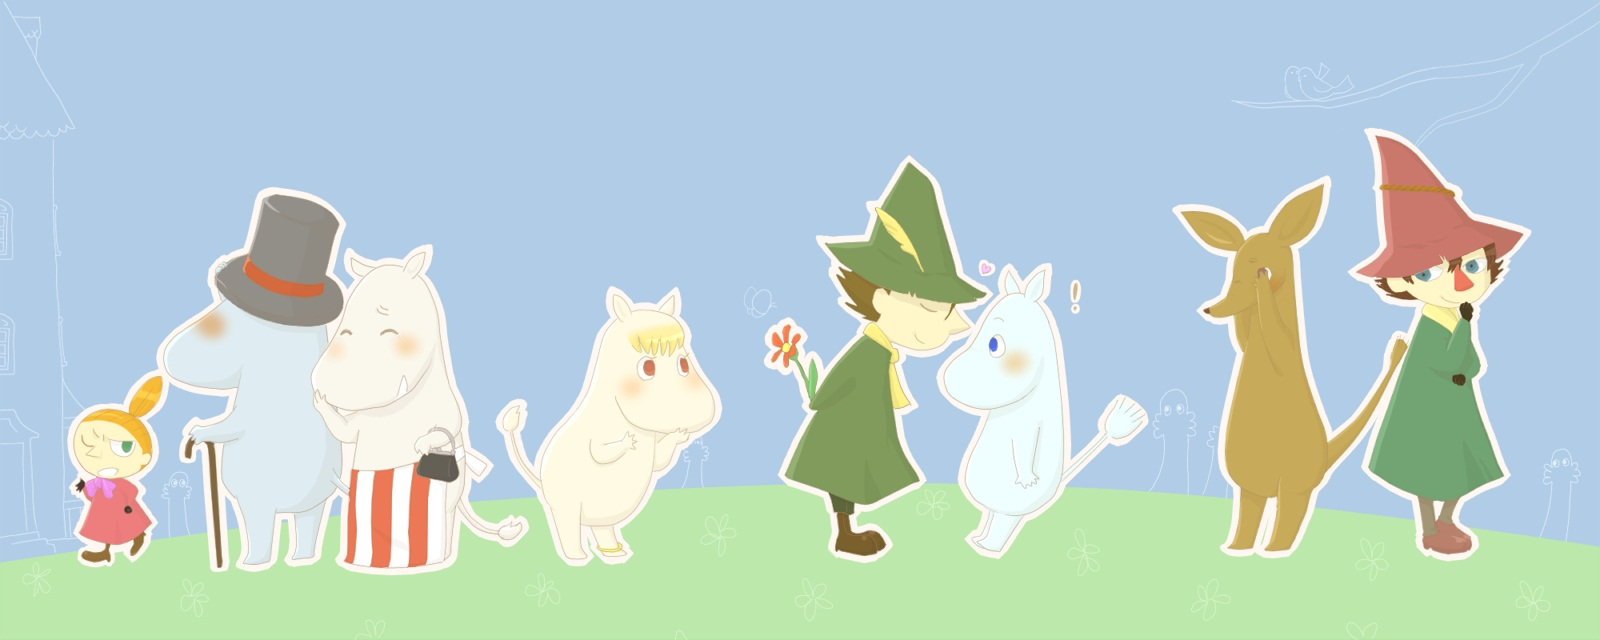 Moomin full cover picture, Moomin full cover wallpaper: cartoonpics.net/r-the-moomins-78-moomin-full-cover-3848.htm